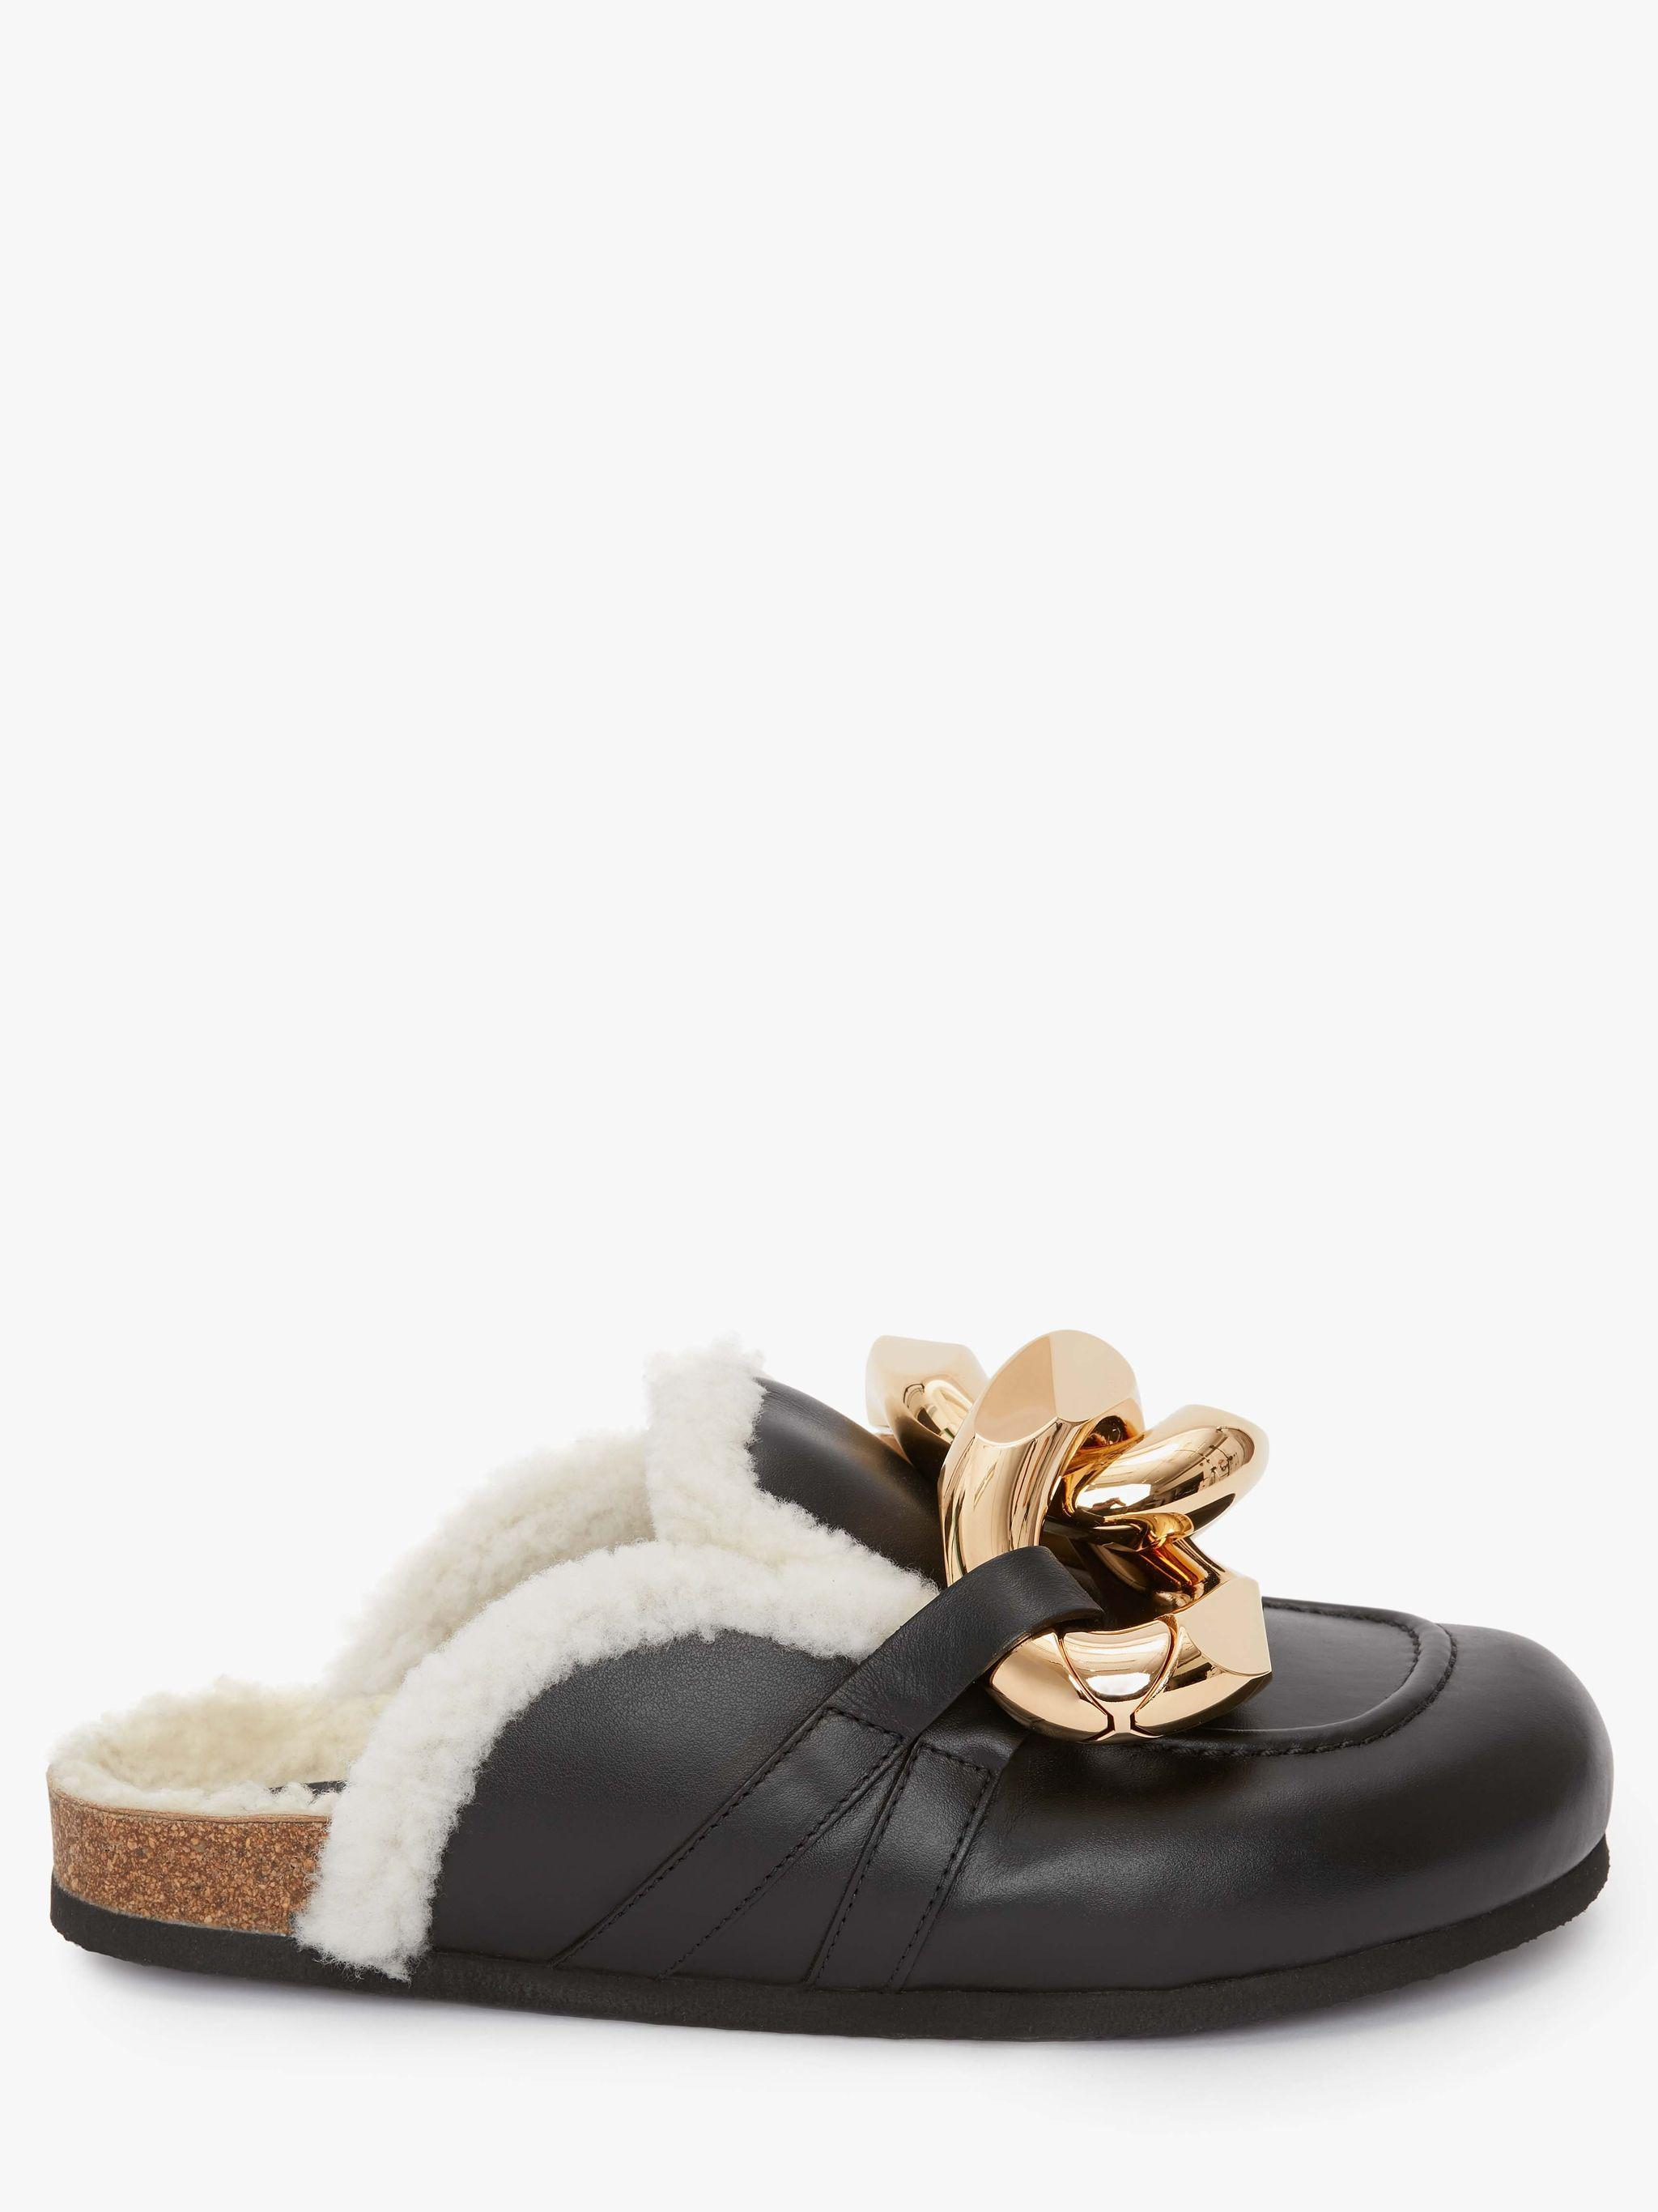 WOMEN'S SHEARLING CHAIN LOAFER